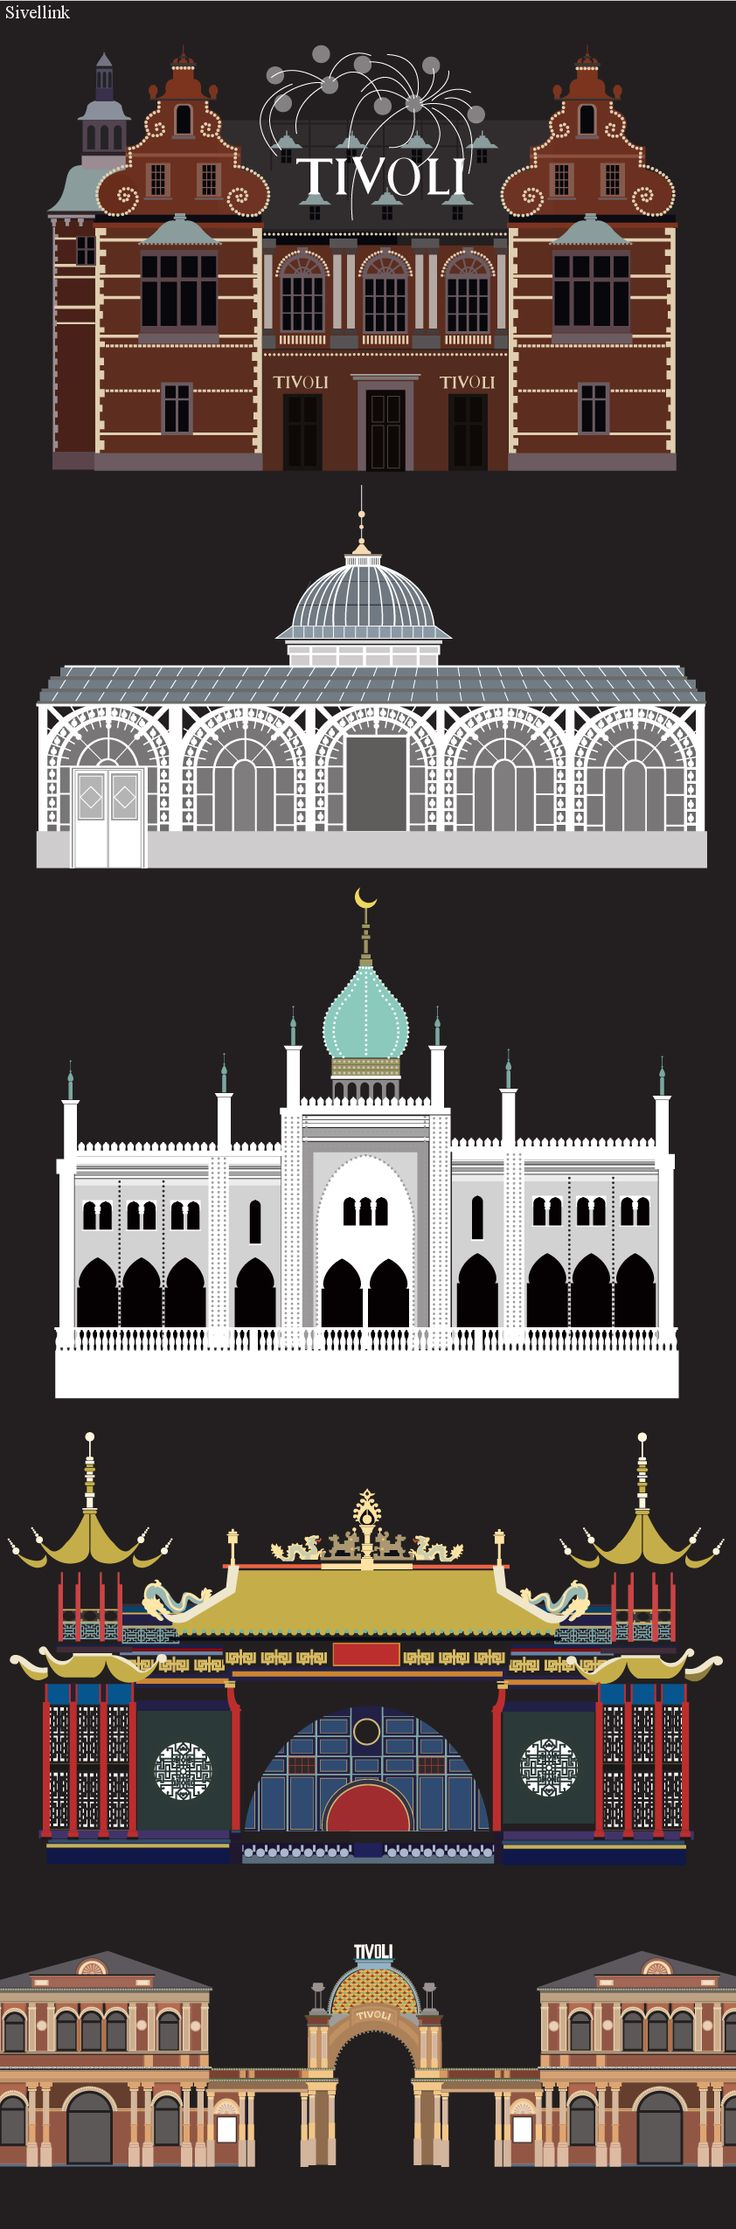 Tivoli-buildings - illustrated by #sivellink Tivoli Gardens is the second-oldest theme park in the world.